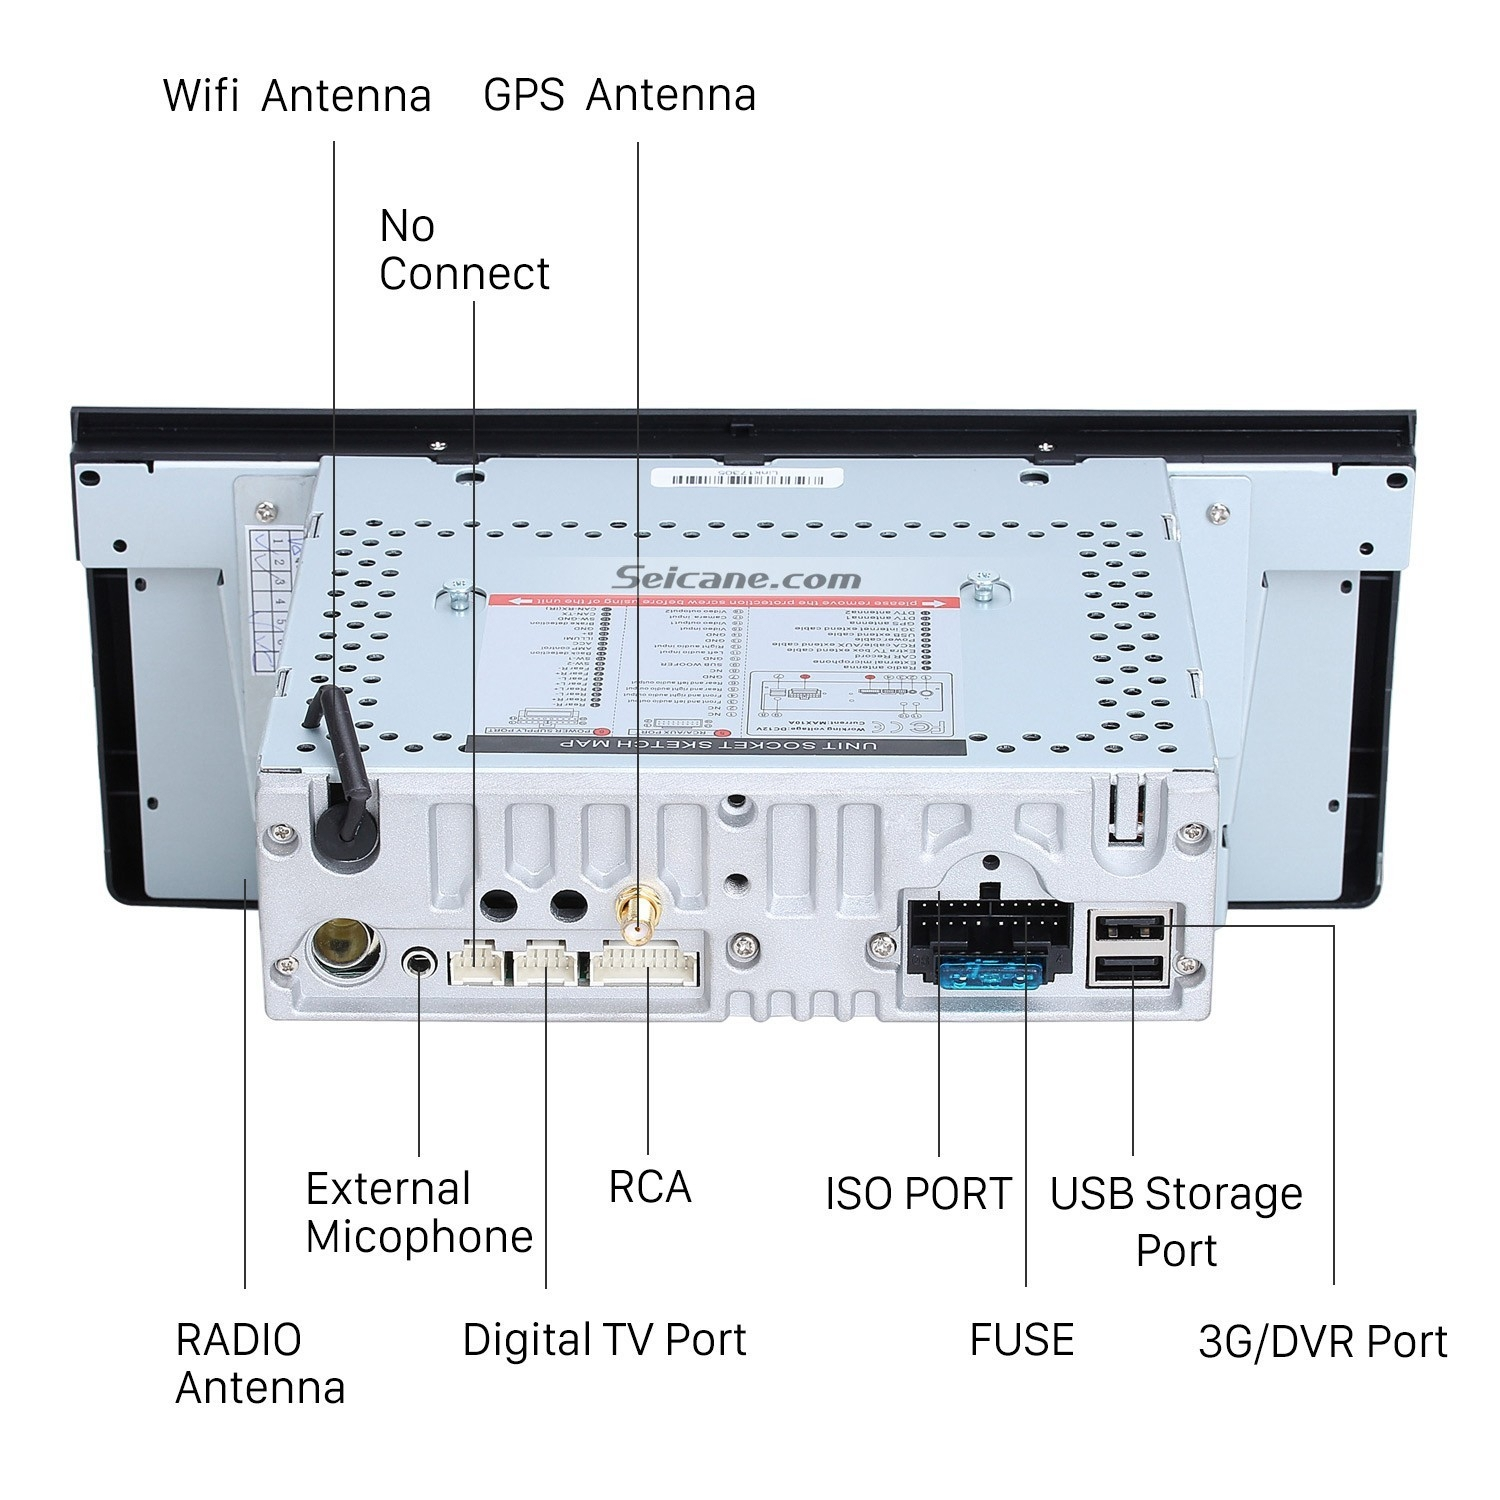 pa system wiring diagram Download-car sound wiring diagram Collection car stereo installation wiring Collection Aftermarket Radio Wiring Diagram Luxury 10-m